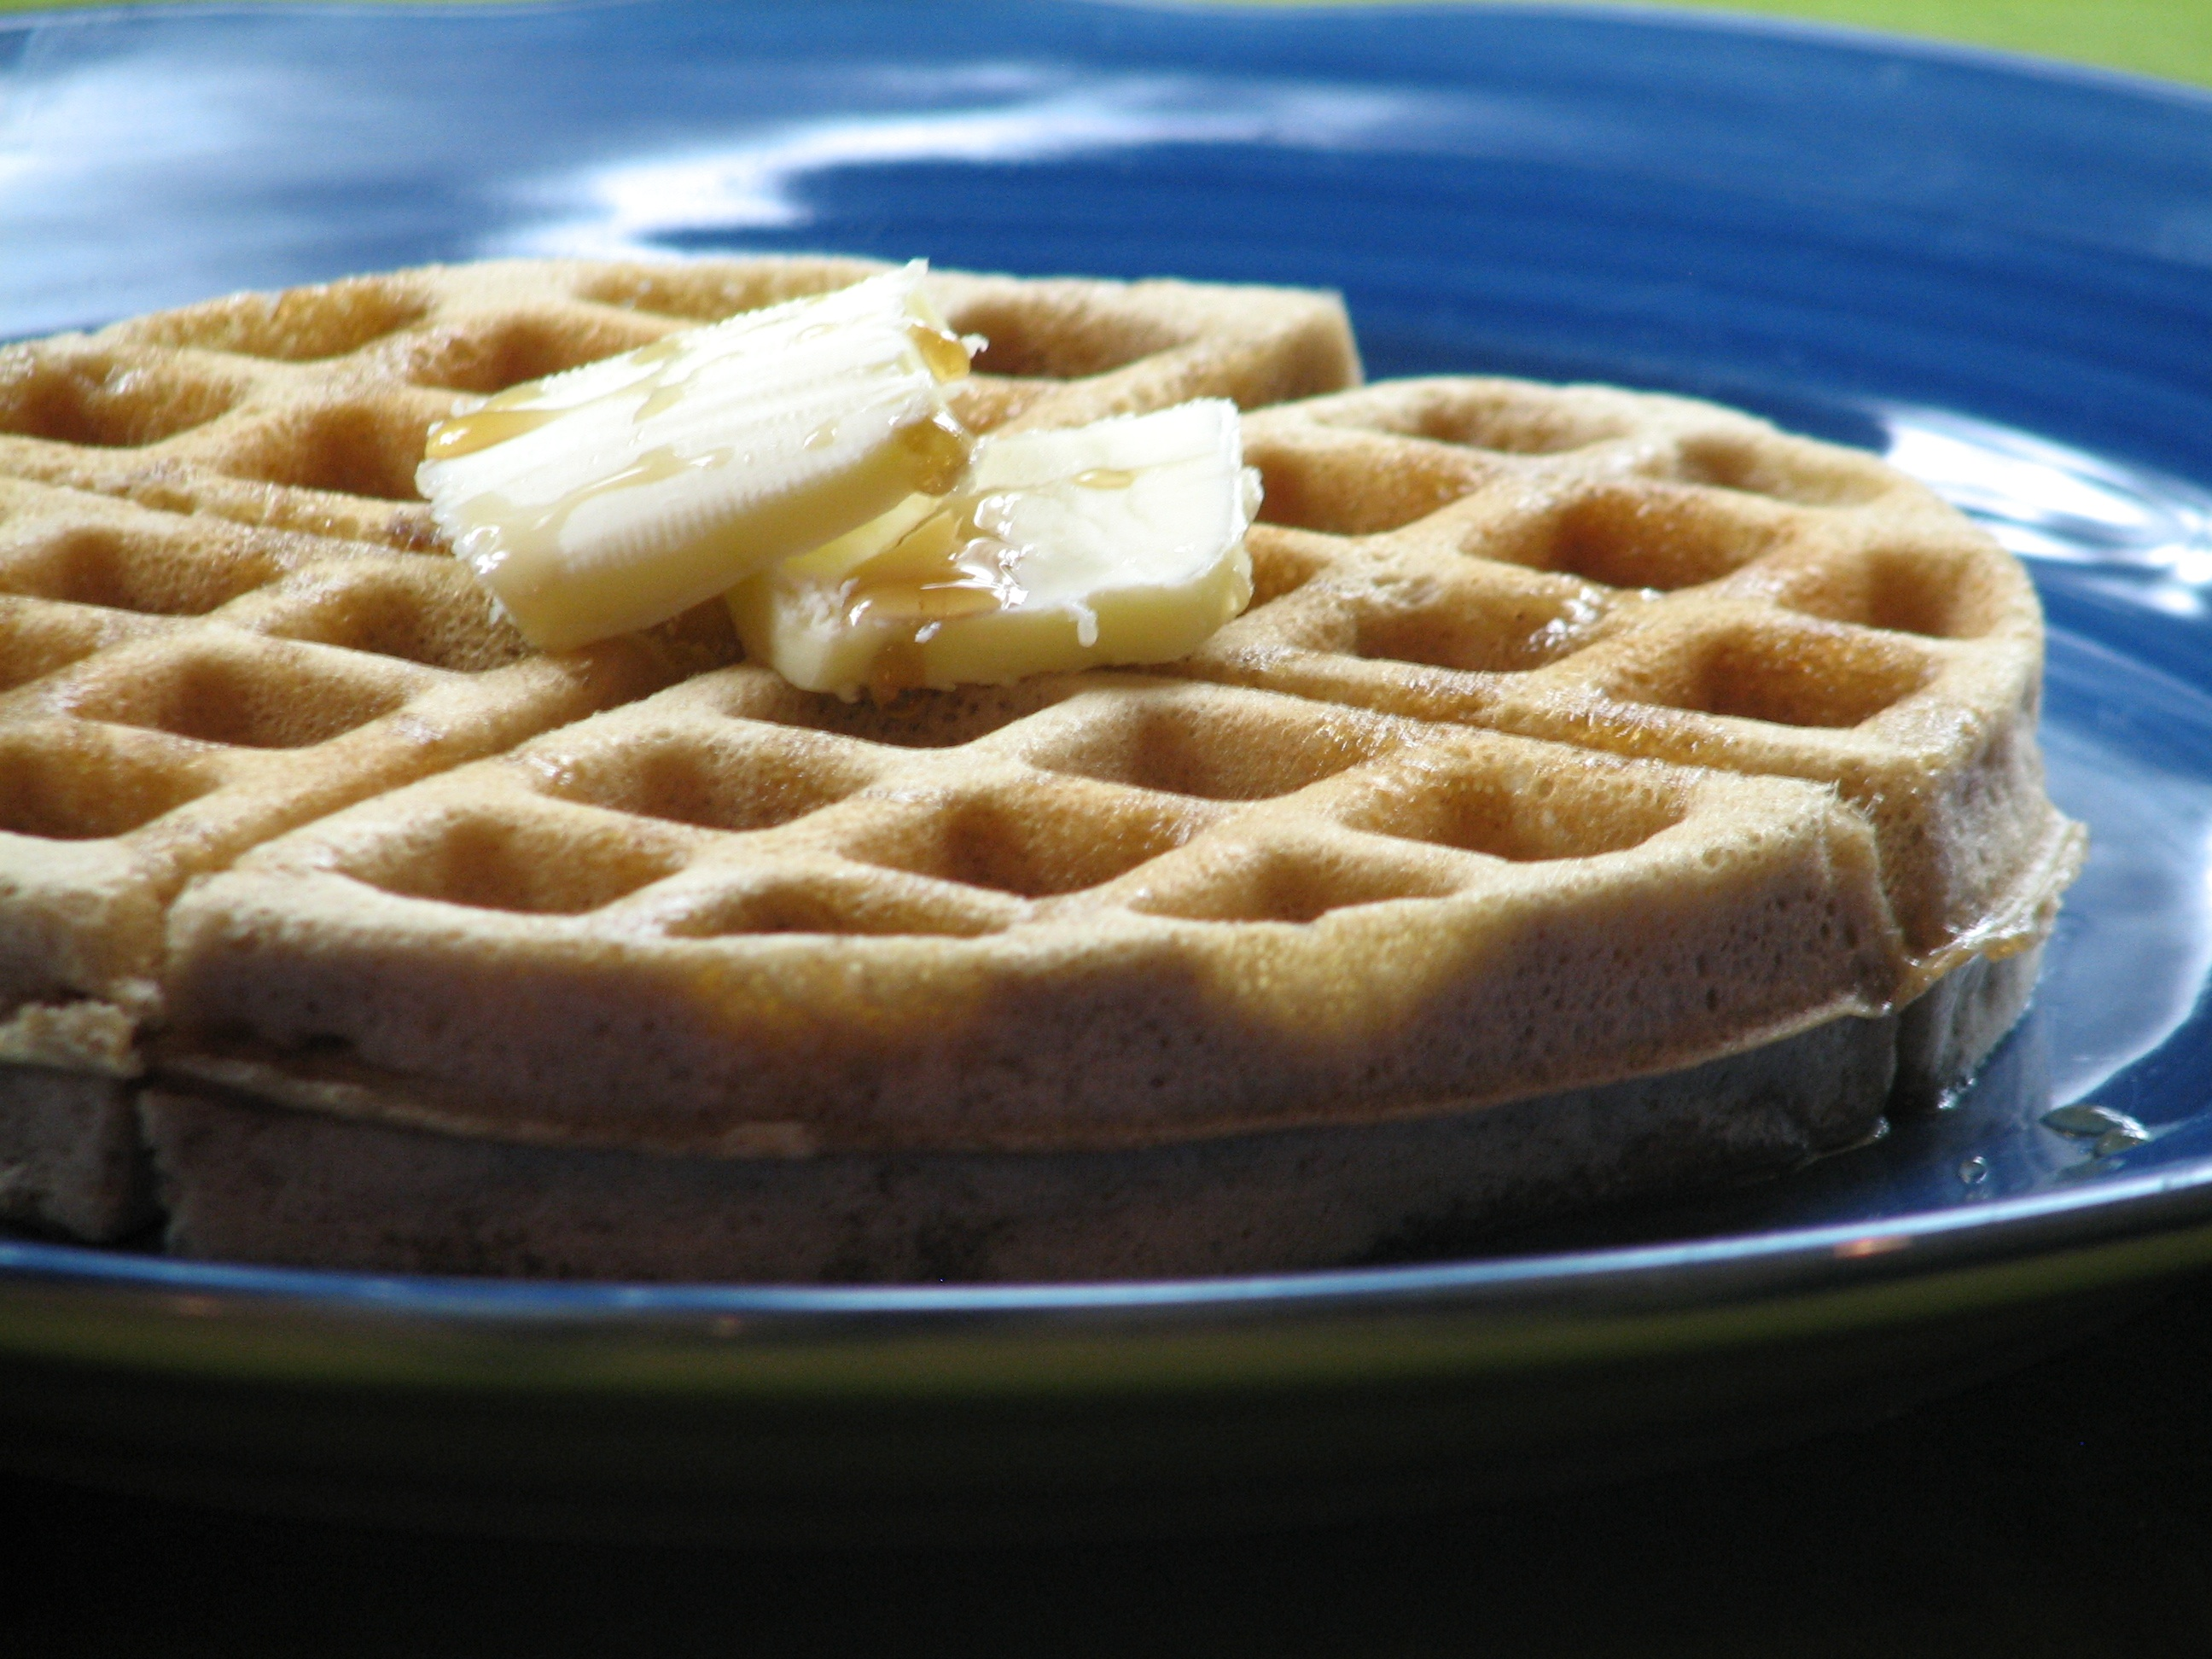 Soaked Gluten-Free Waffles from CookingTF.com